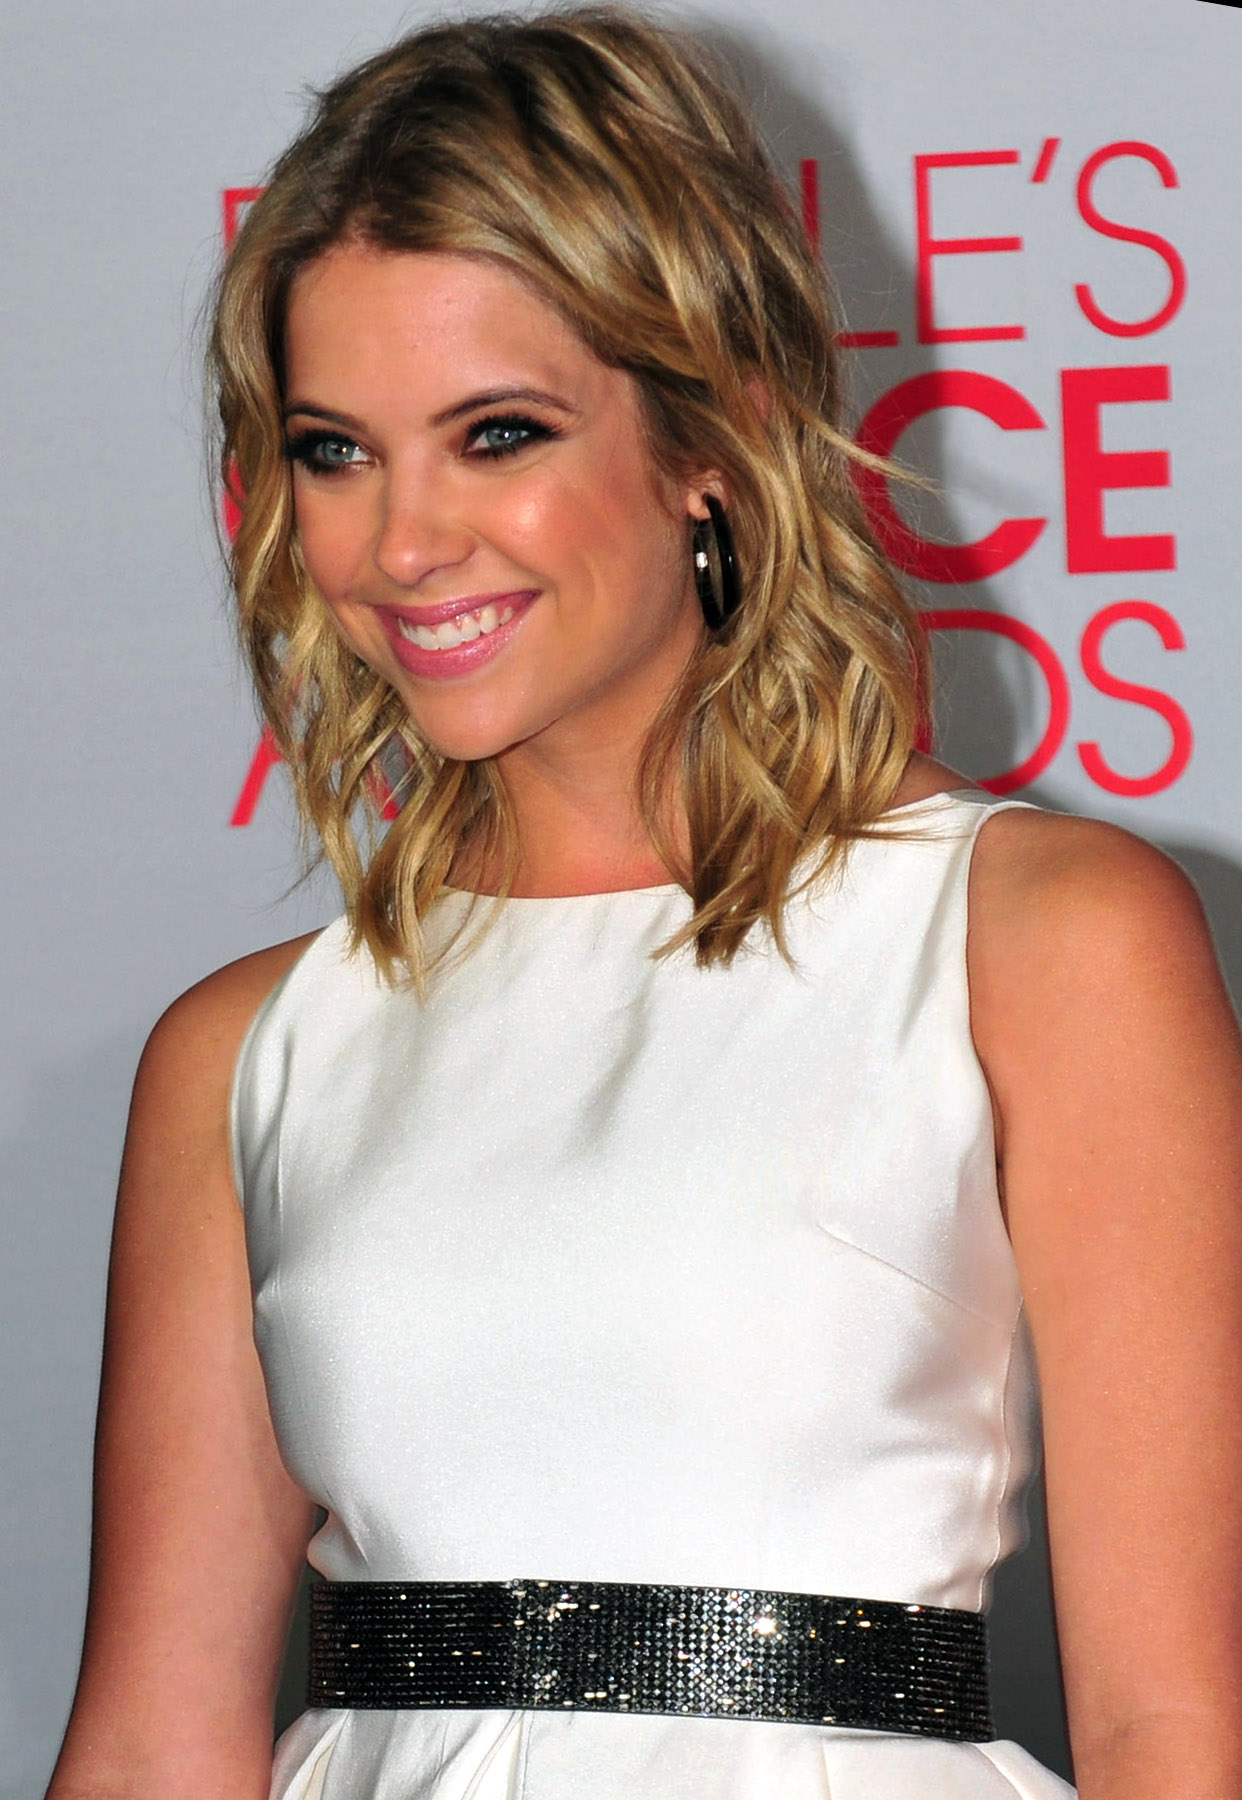 File:Ashley Benson, 2012.jpg